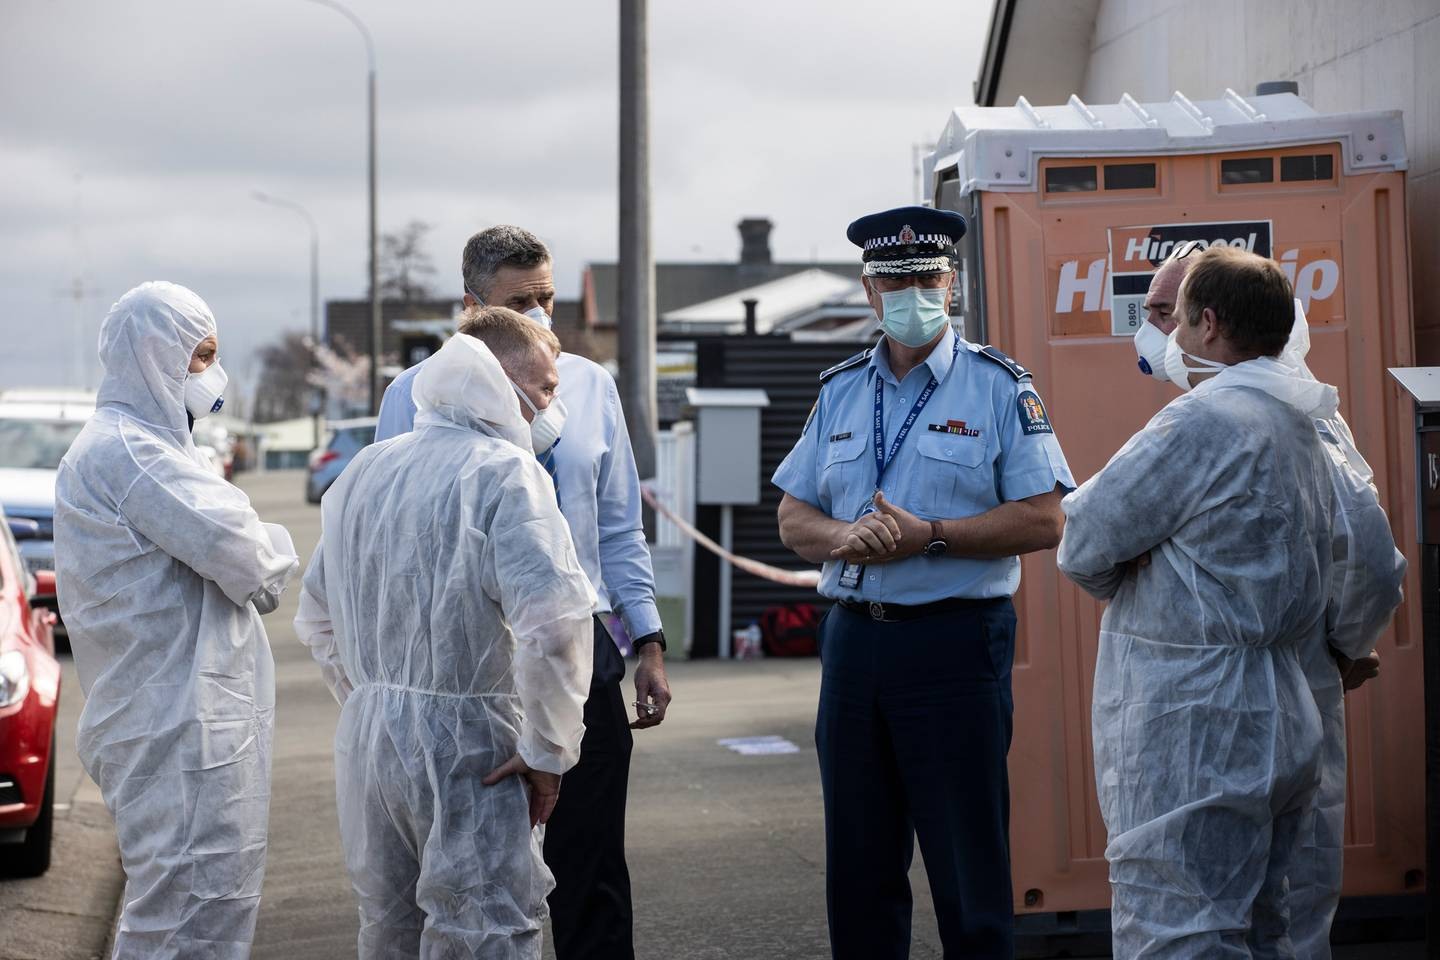 Police today at the scene of where three young girls were found dead in Timaru. Photo / George Heard